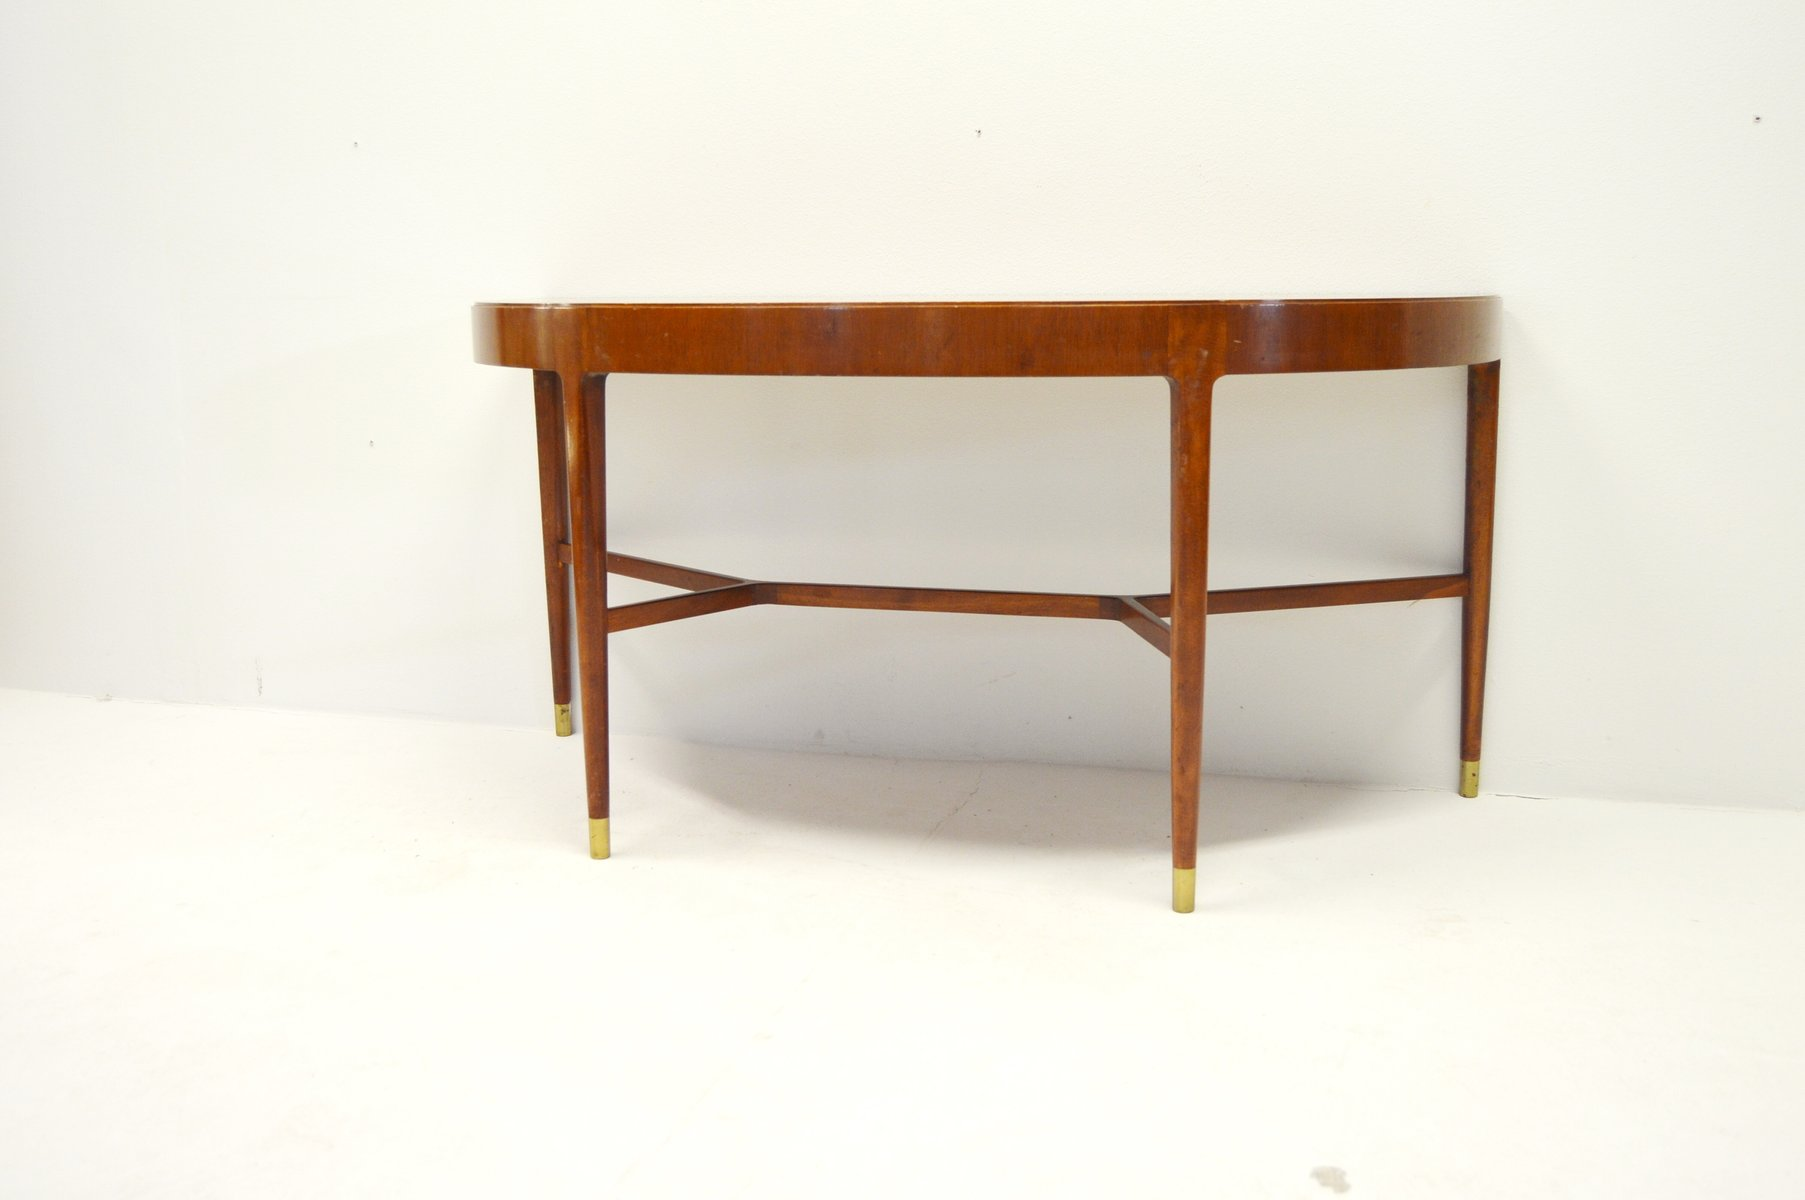 Mahogany console table with brass fittings 1950s for sale at pamono mahogany console table with brass fittings 1950s geotapseo Gallery